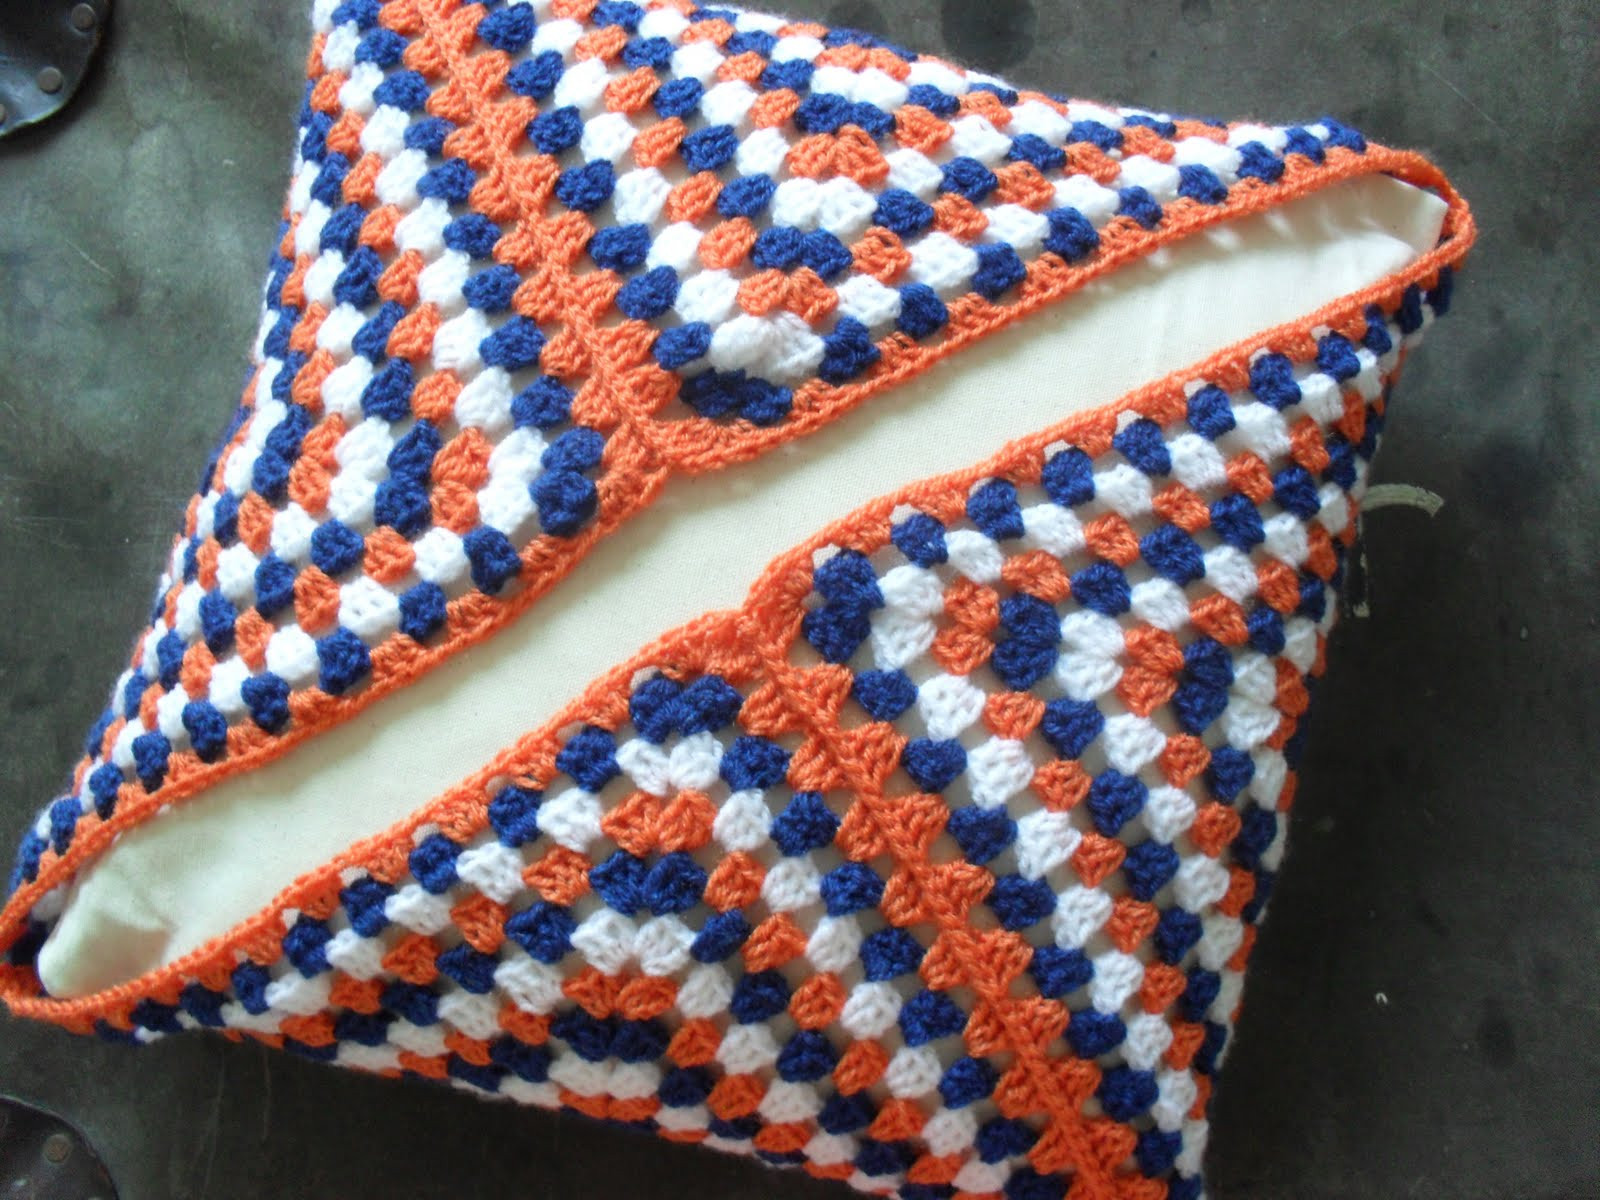 Crochet Pillow Cover Luxury Crochet Granny Square Cushion Cover Of Amazing 50 Pics Crochet Pillow Cover